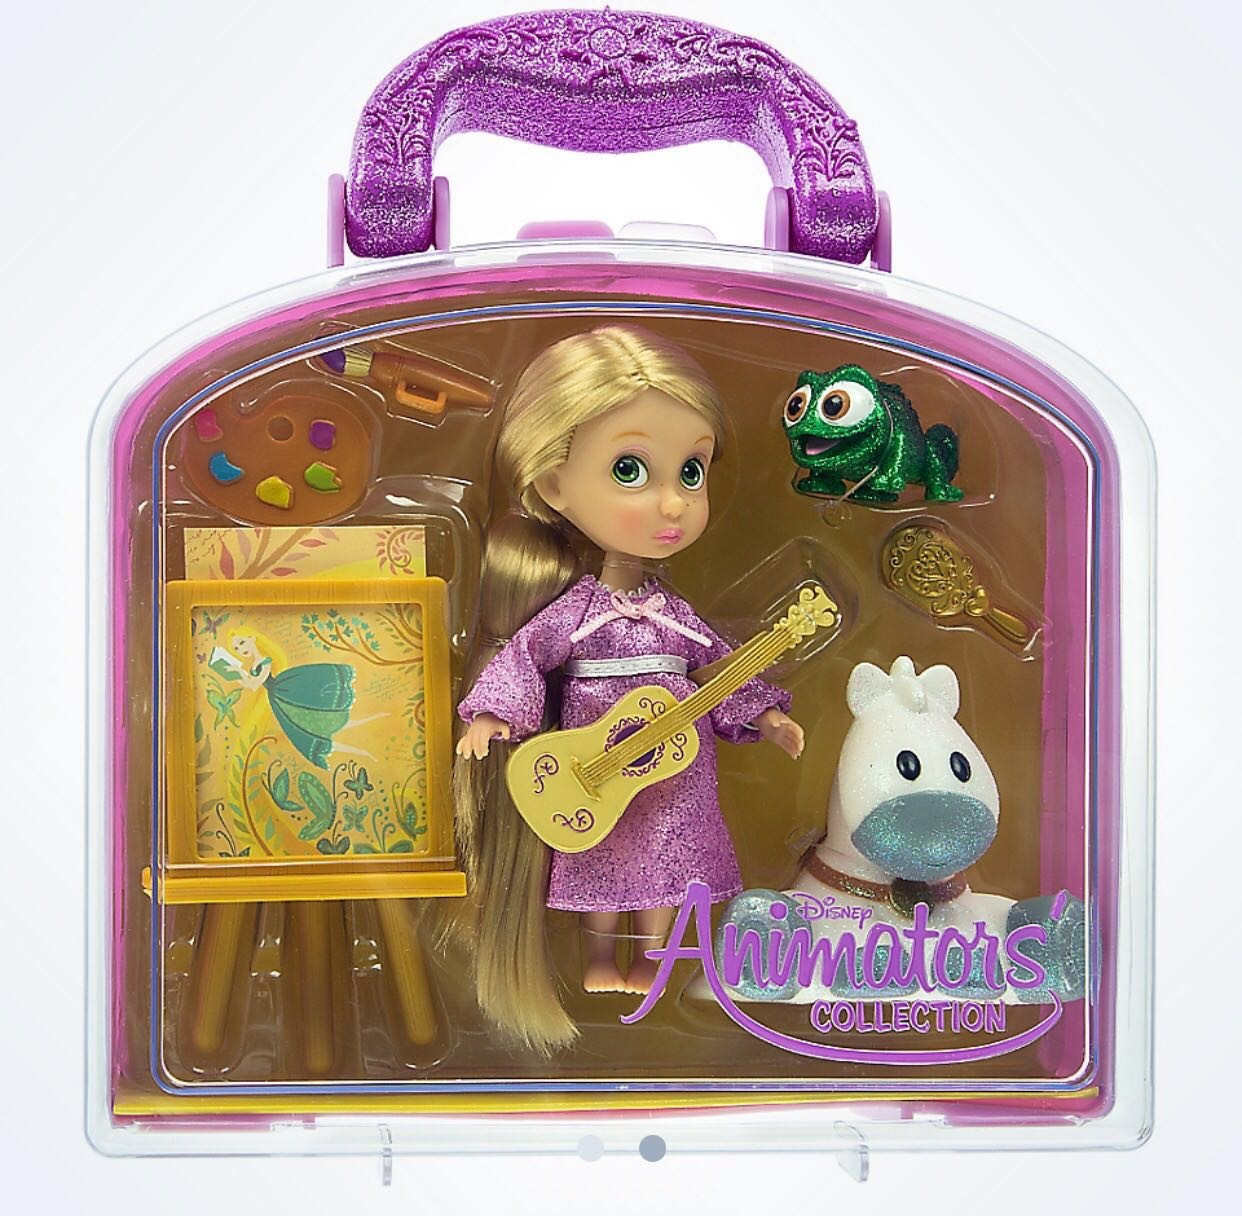 Disney Animators' Collection Rapunzel & Friends Mini Doll Play Set New with Case by